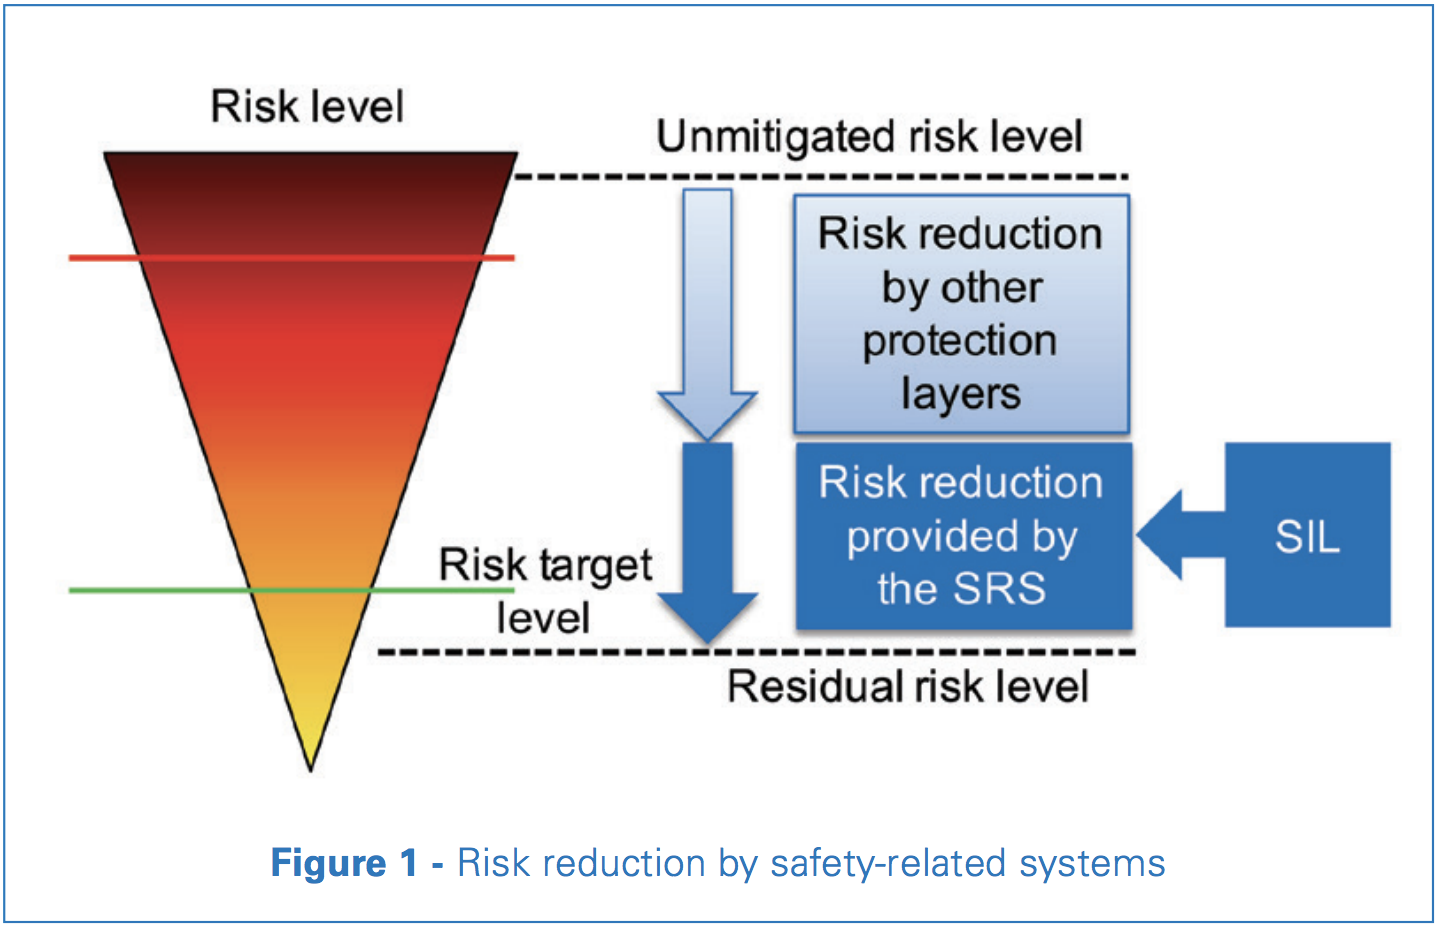 Risk reduction by safety-related systems